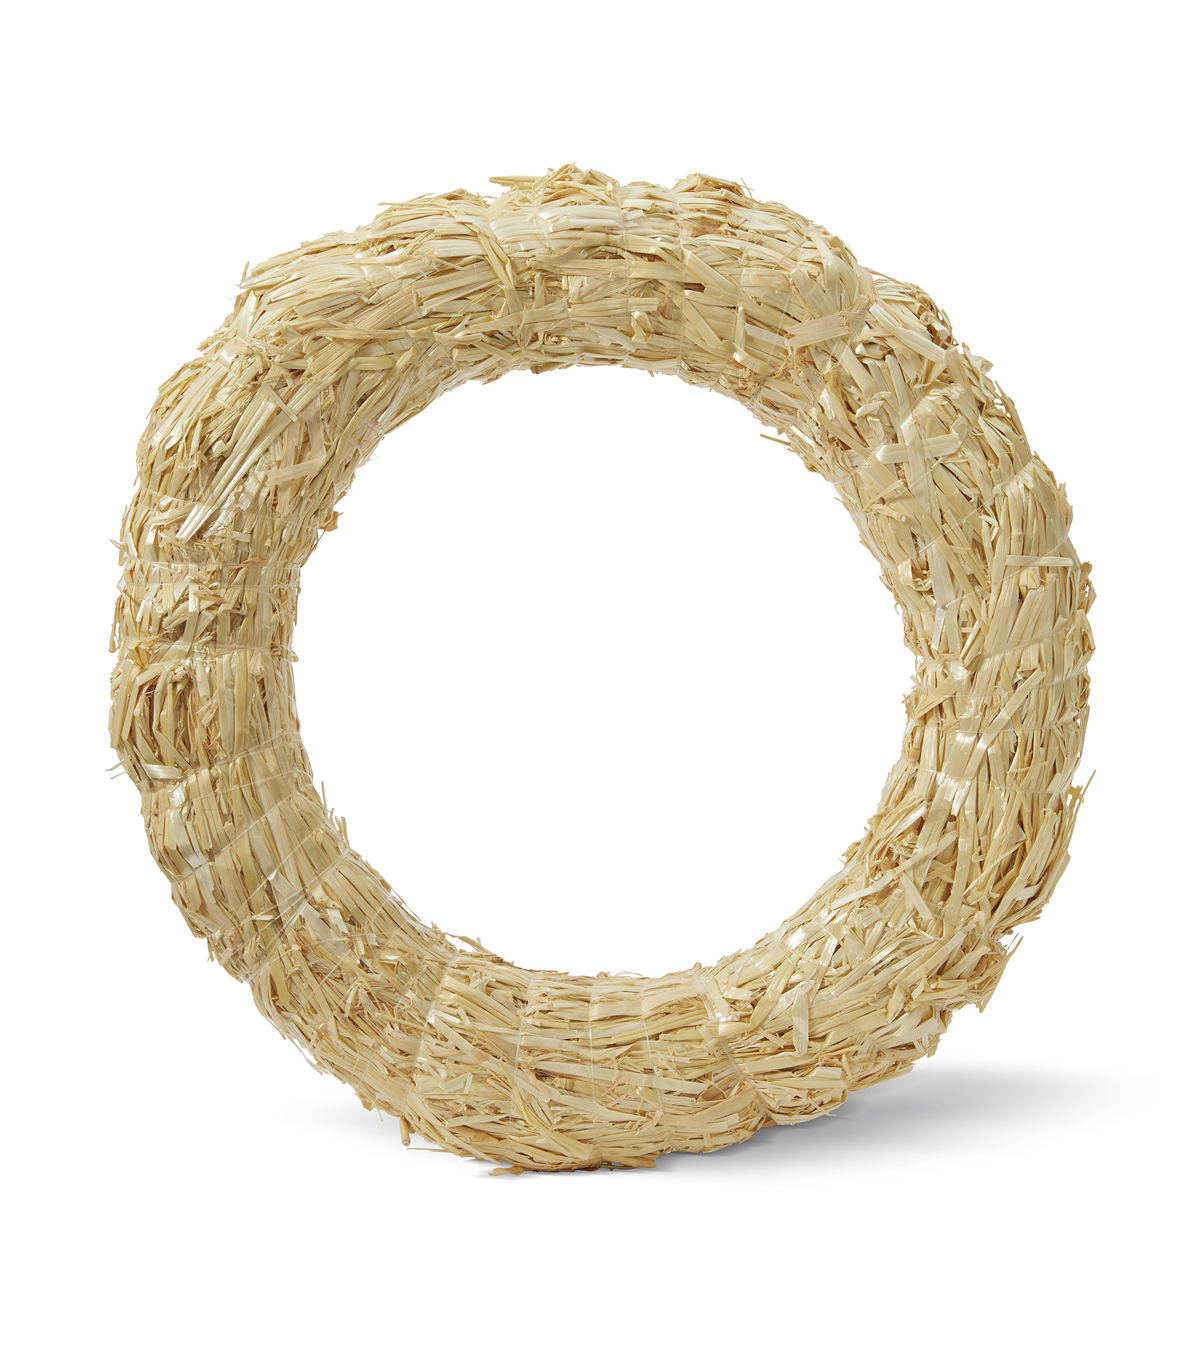 18\u0022 Straw Wreath - Clear Wrapped